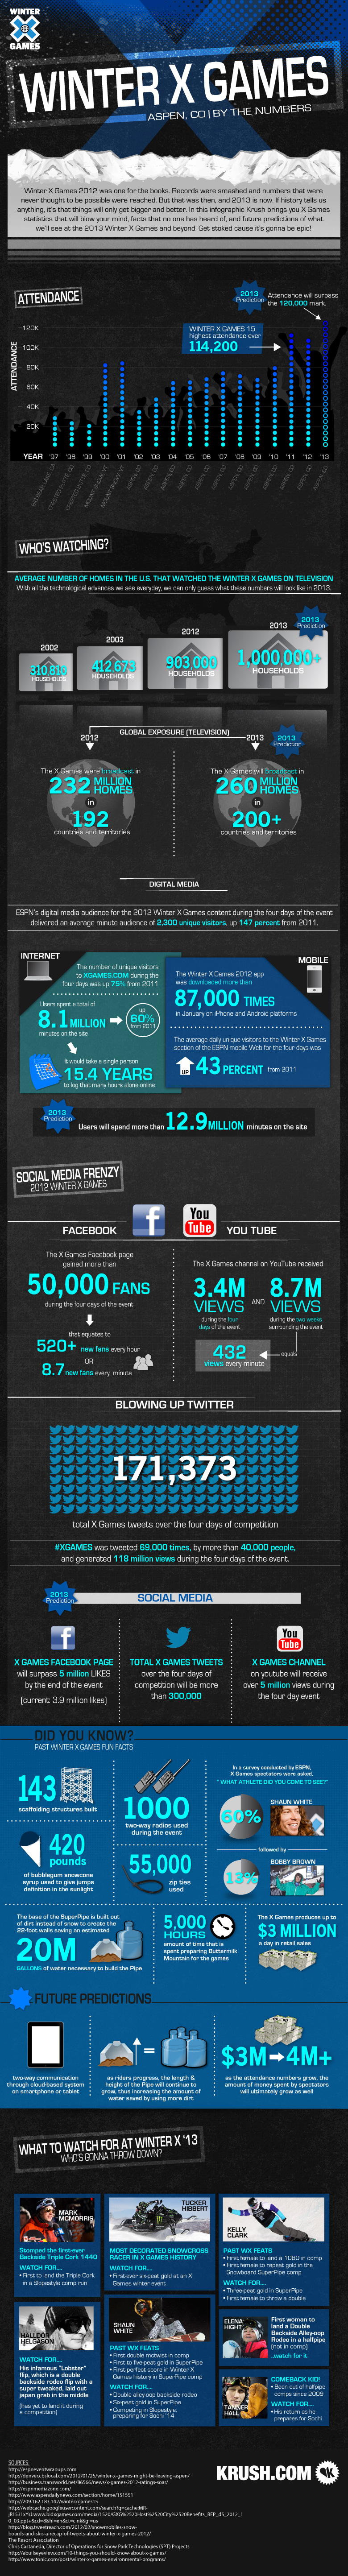 winter-x-games--by-the-numbers_50e4a9af00d86